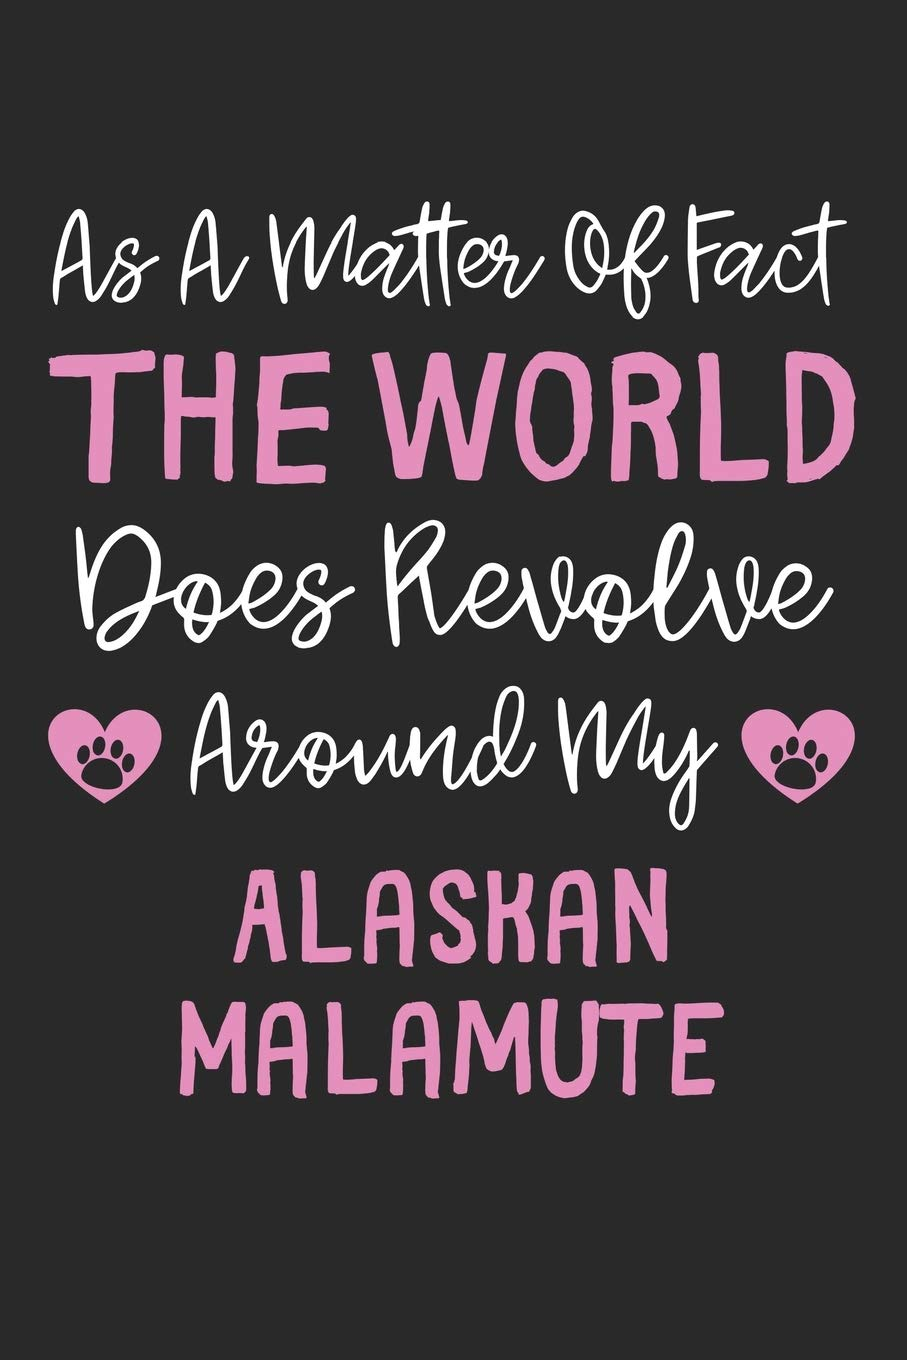 As A Matter Of Fact The World Does Revolve Around My Alaskan Malamute: Lined Journal, 120 Pages, 6 x 9, Funny Alaskan Malamute Gift Idea, Black Matte … Revolve Around My Alaskan Malamute Journal)